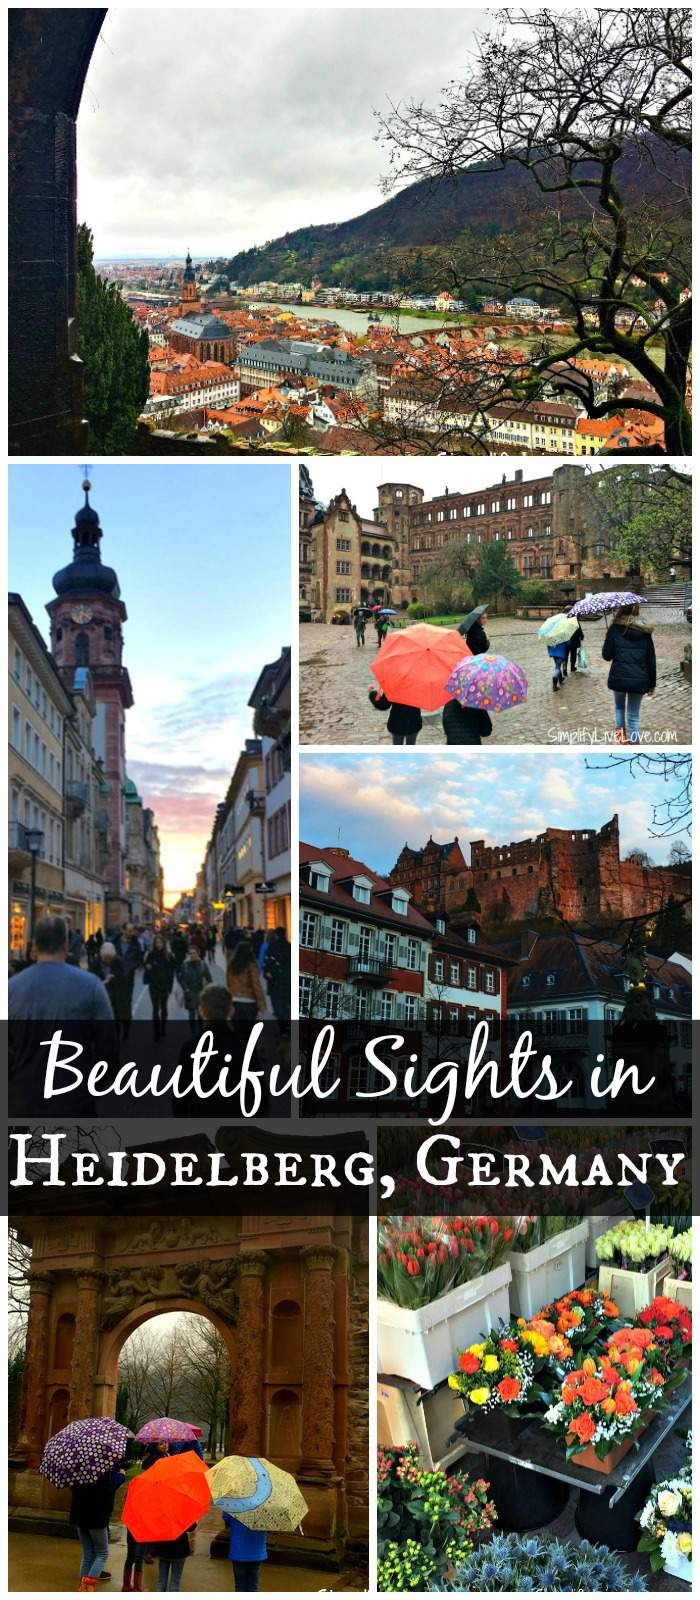 Despite Rick Steve's claim that Heidelberg Germany is not worth a trip, here are several reasons why you might want to visit this beautiful city during your European Vacation.